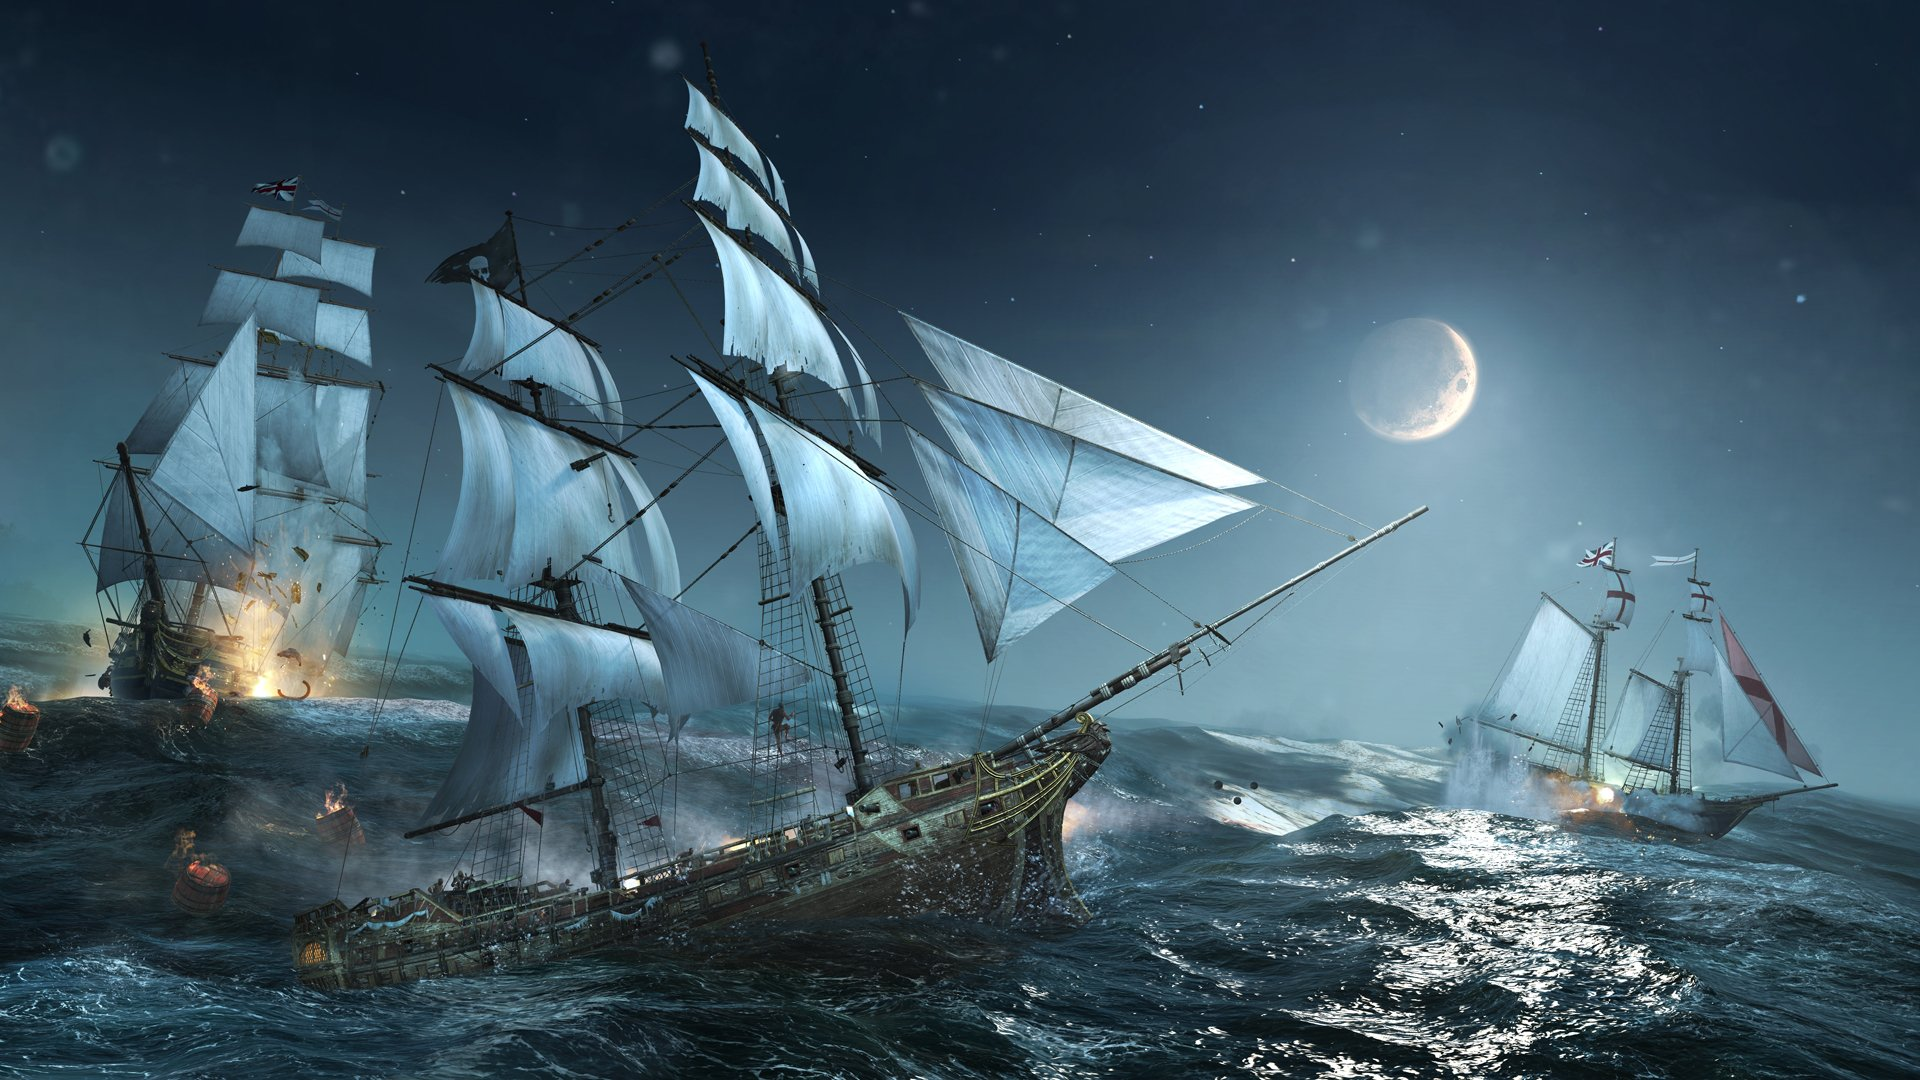 Sea Pirate Wallpapers Best Wallpapers 1920x1080